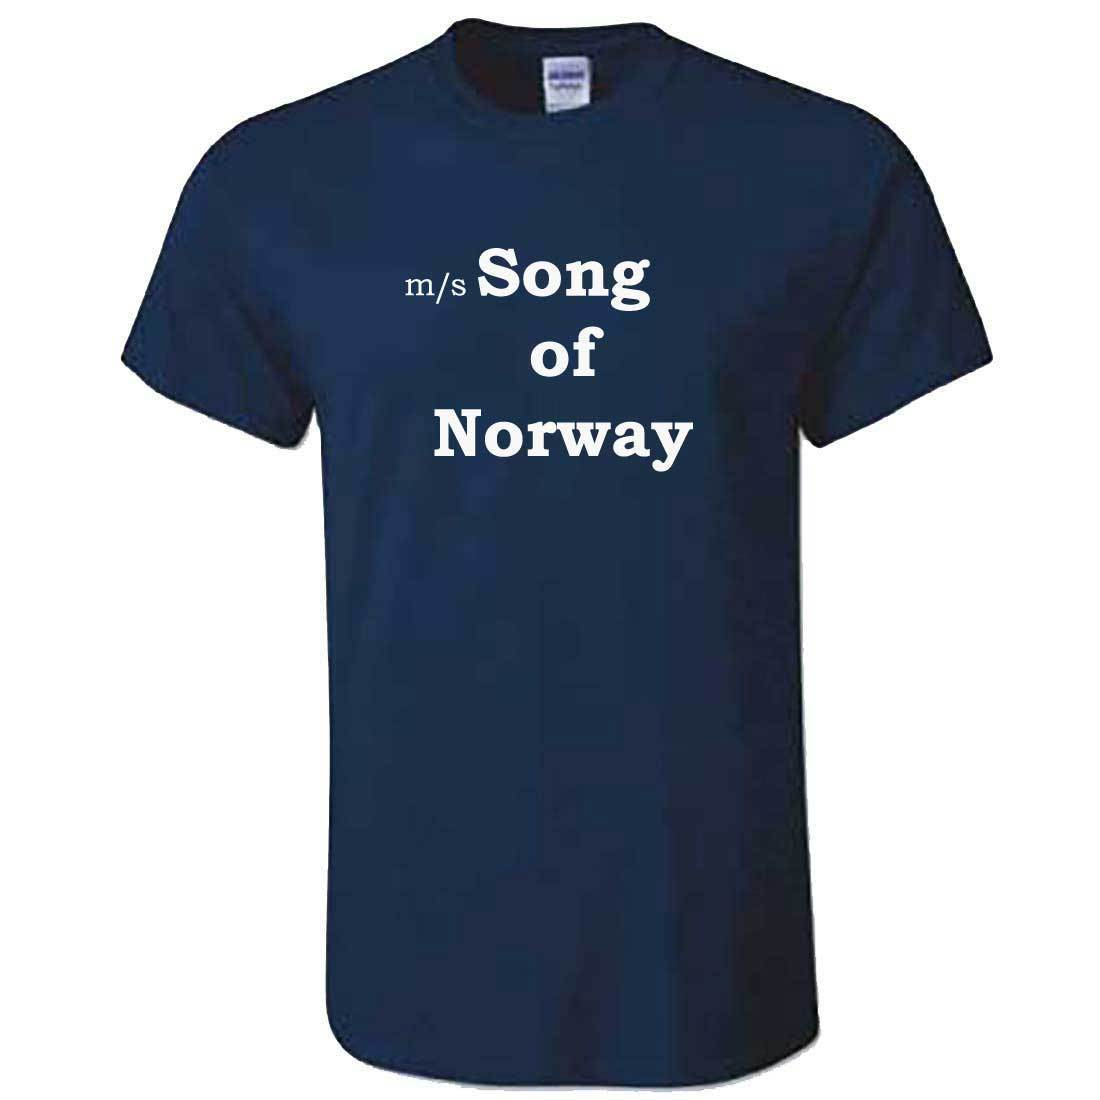 Unisex Worn By David Bowie Song Of Norway TShirt - Blackstar Tribute T Shirt image